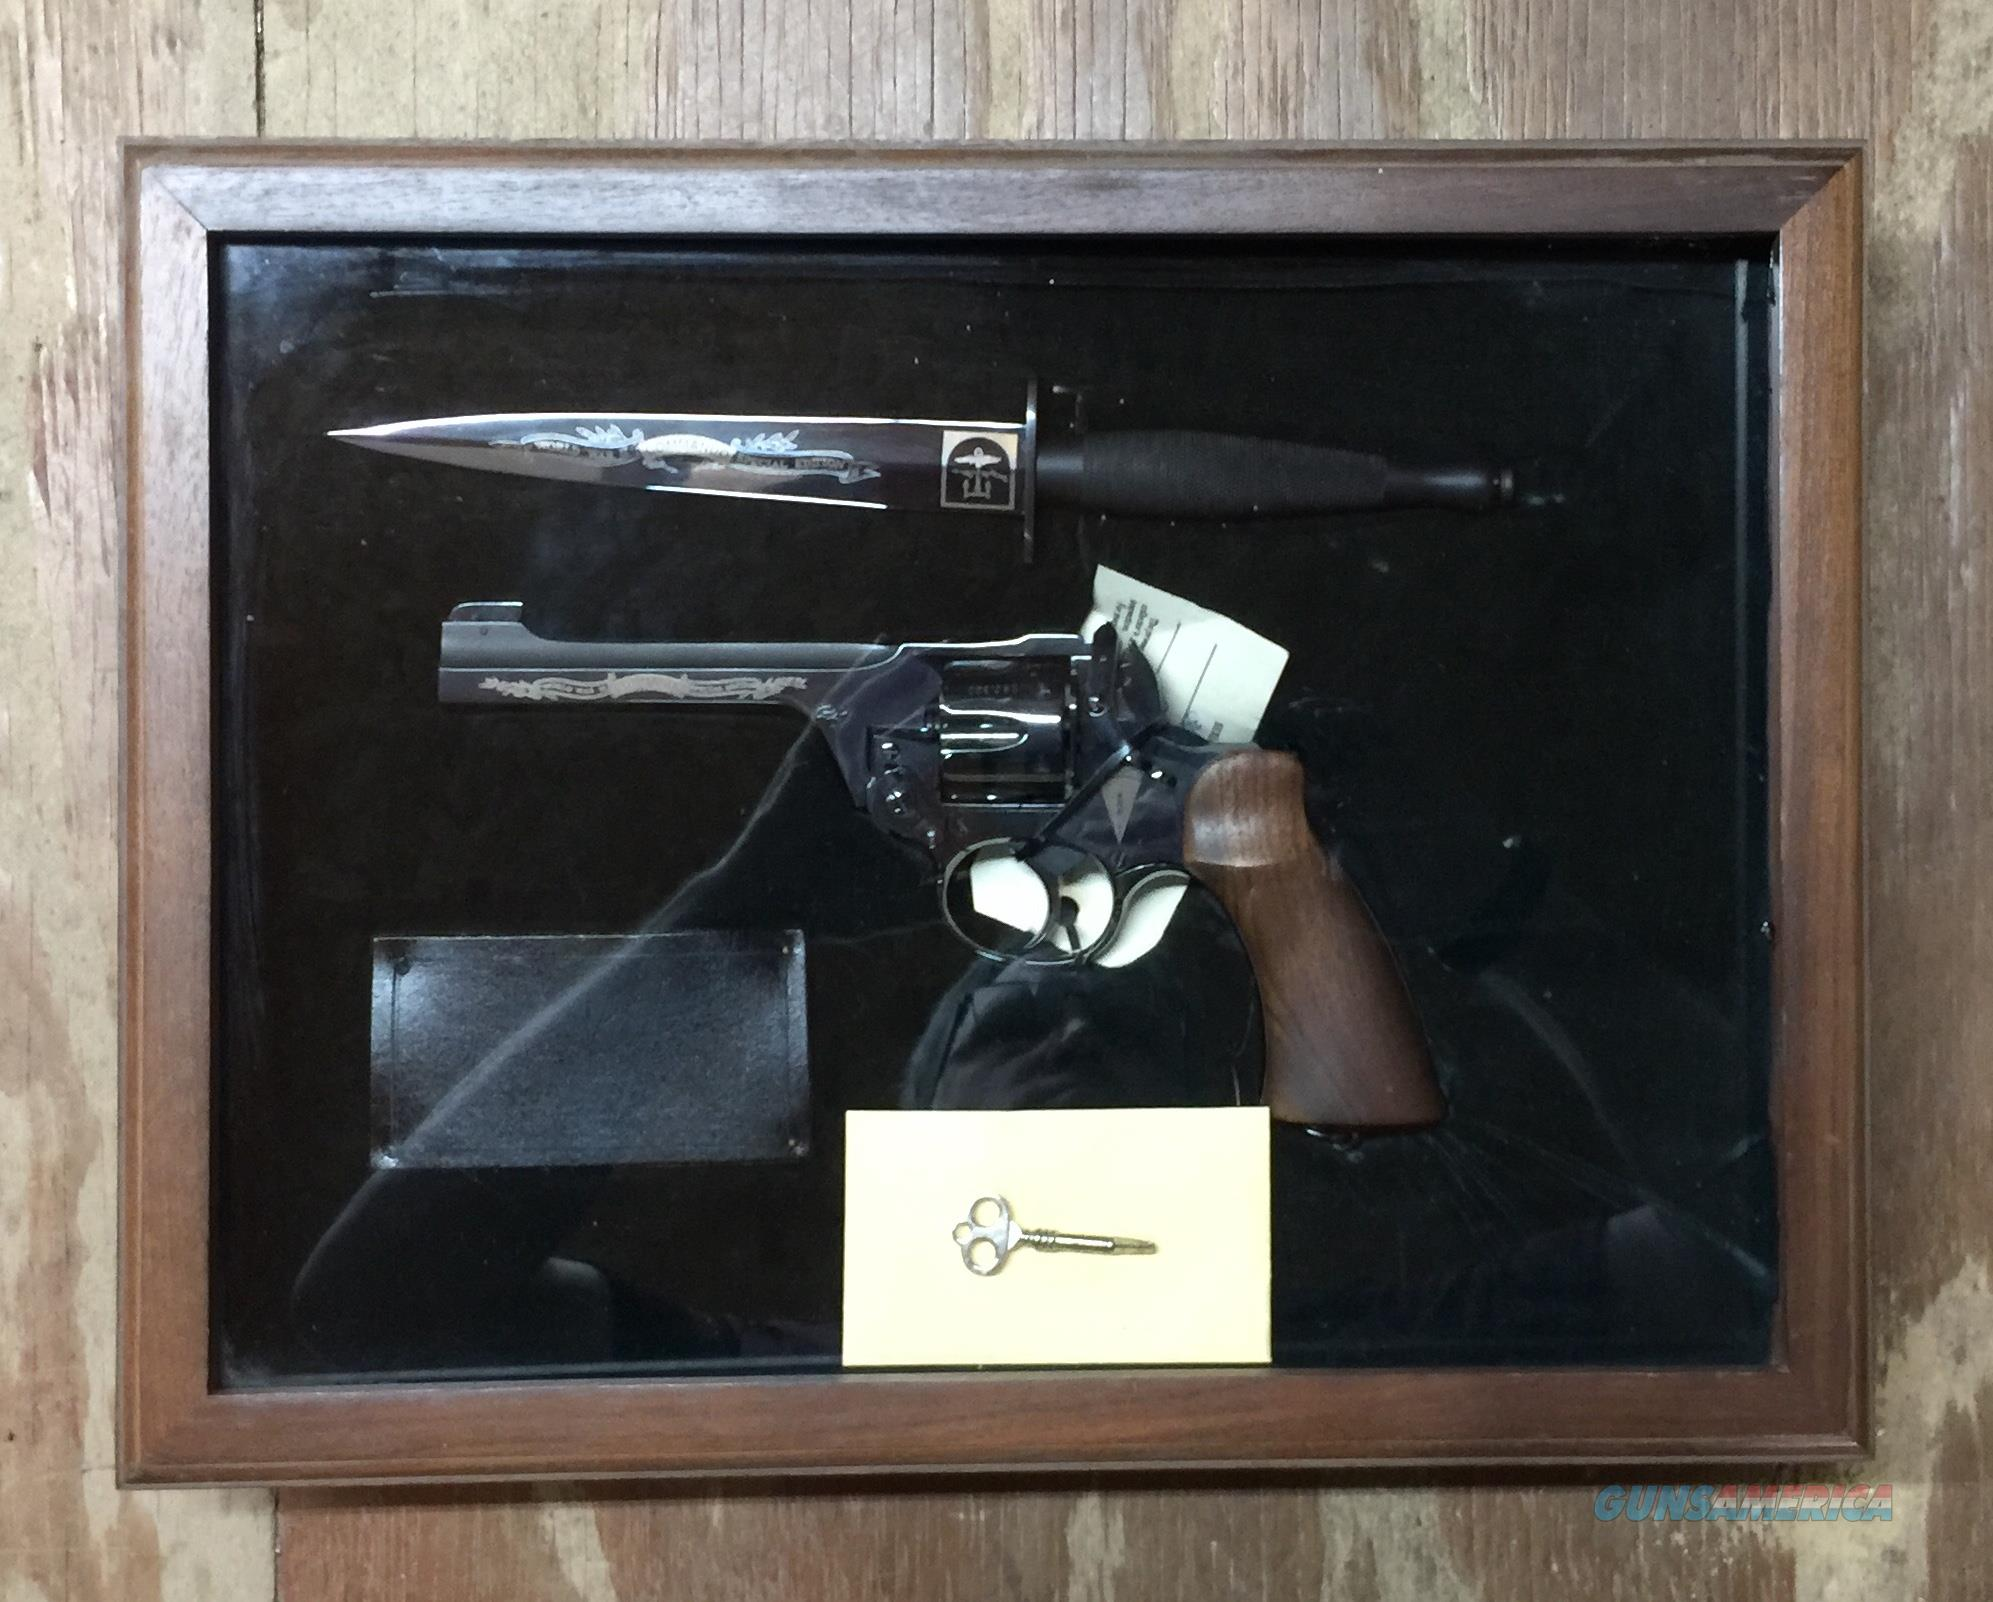 Cased WWII Commando Special Edition Commemorative British Enfield No. 2 Mk I .38 caliber Double Action Revolver and Fairbairn Sykes Fighting Knife  Guns > Pistols > B Misc Pistols